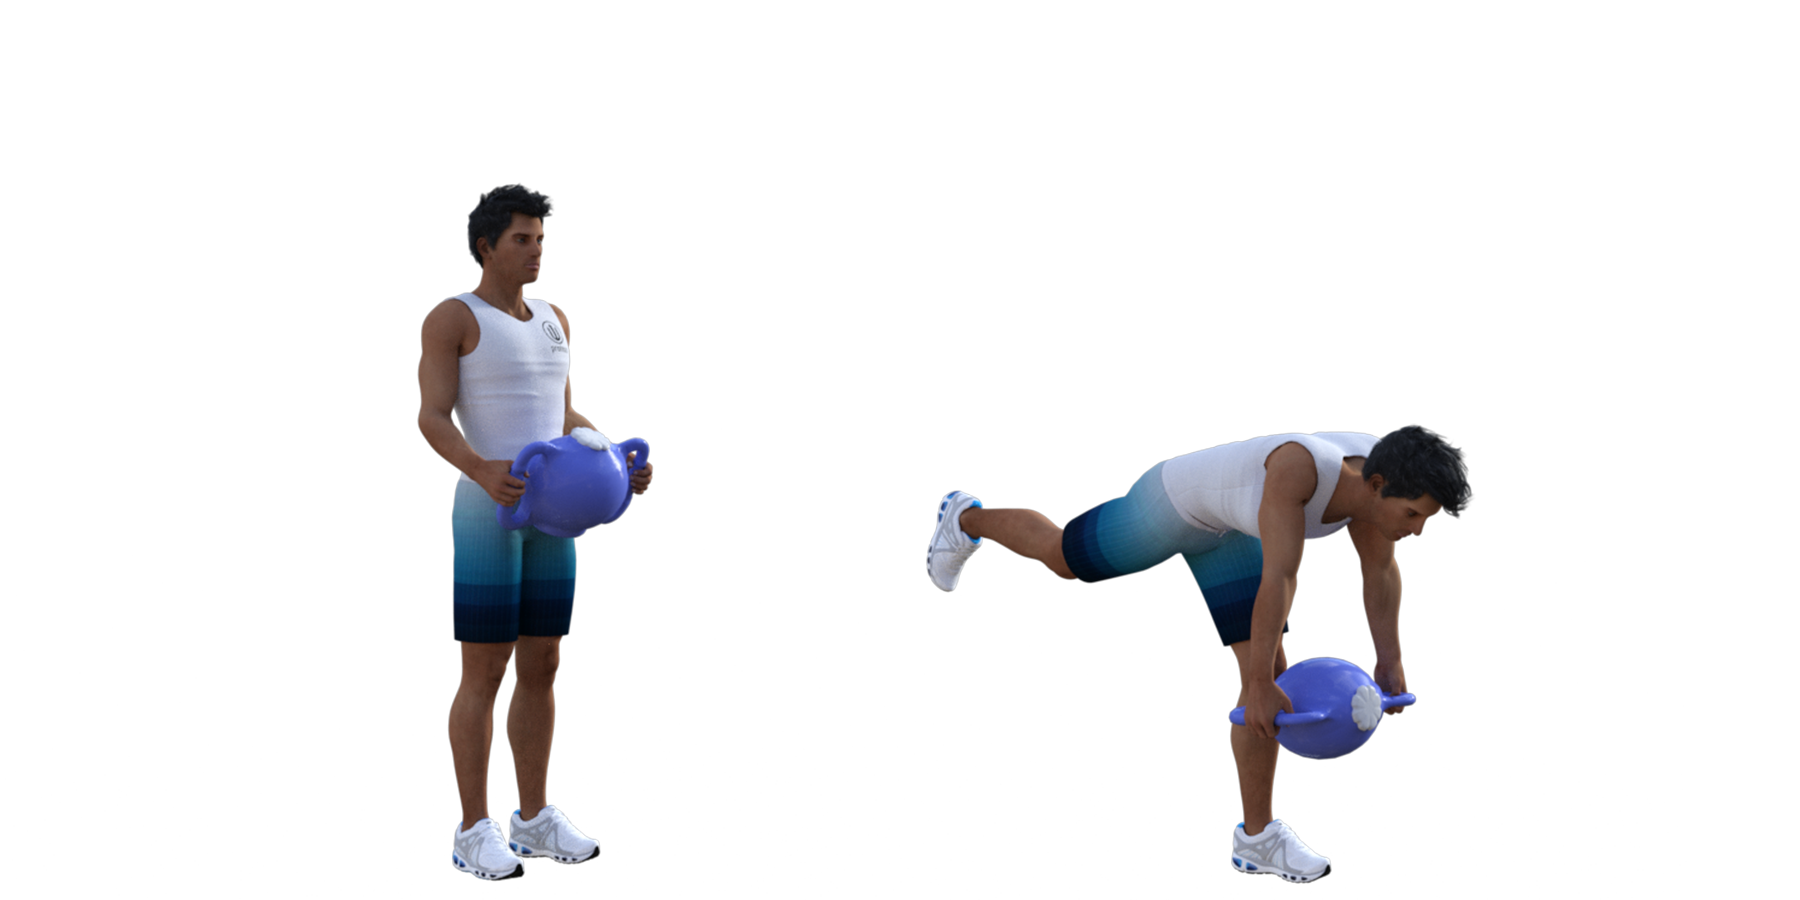 Proteus Ball Intermediate Exercises Switch Movement Legs And Repeat The